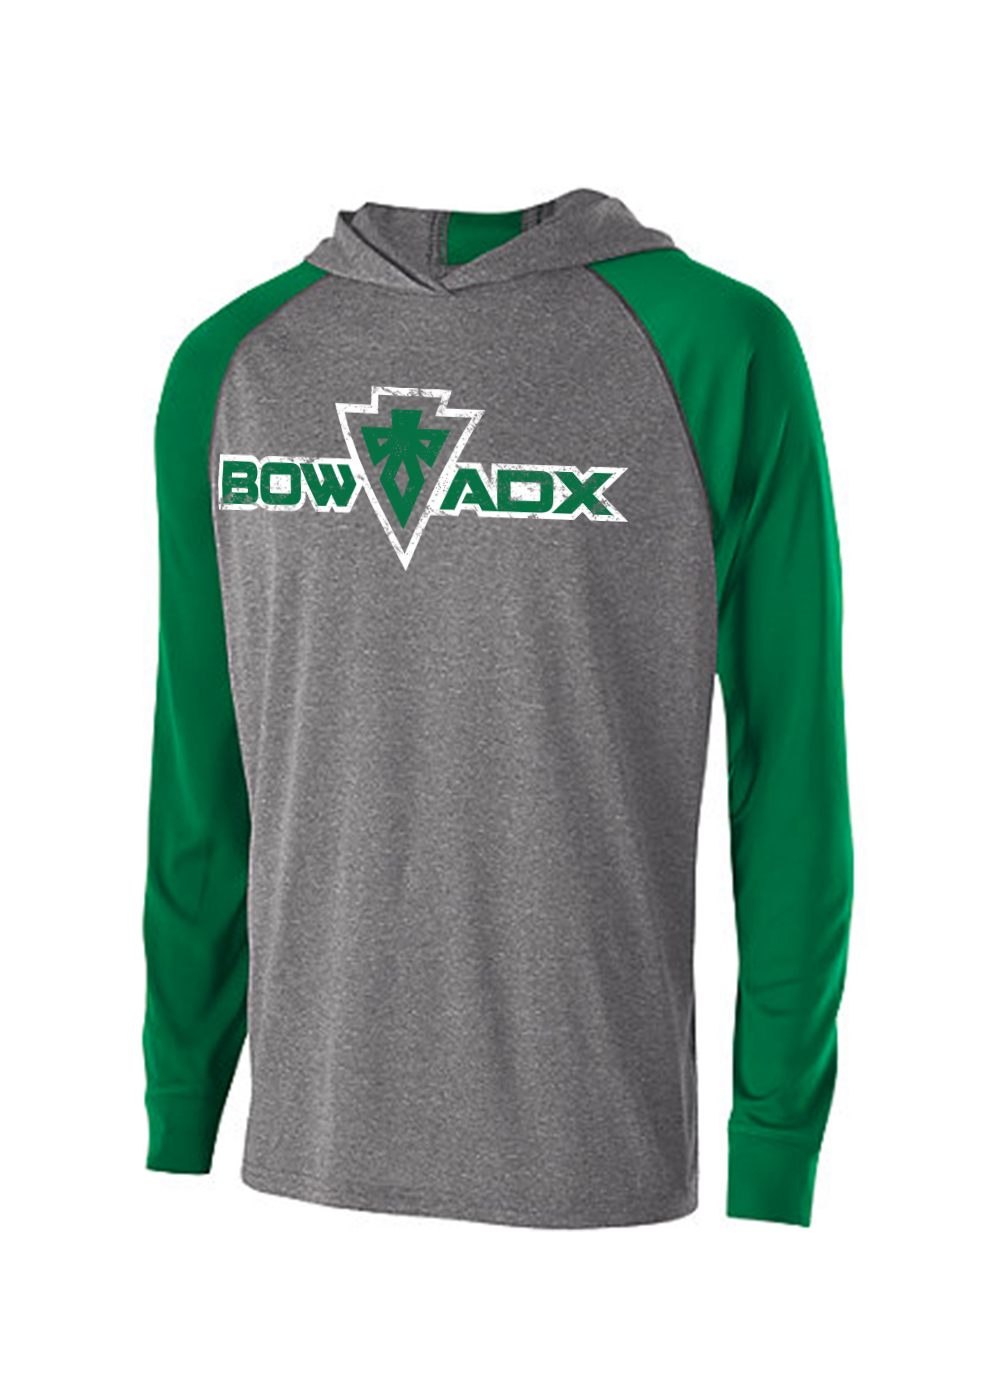 Click image for larger version.   Name:	Long-Sleeve-Heather-Graphite-Kelly-Green-Pullover-Hoodie.jpg  Views:	7  Size:	360.1 KB  ID:	6290105